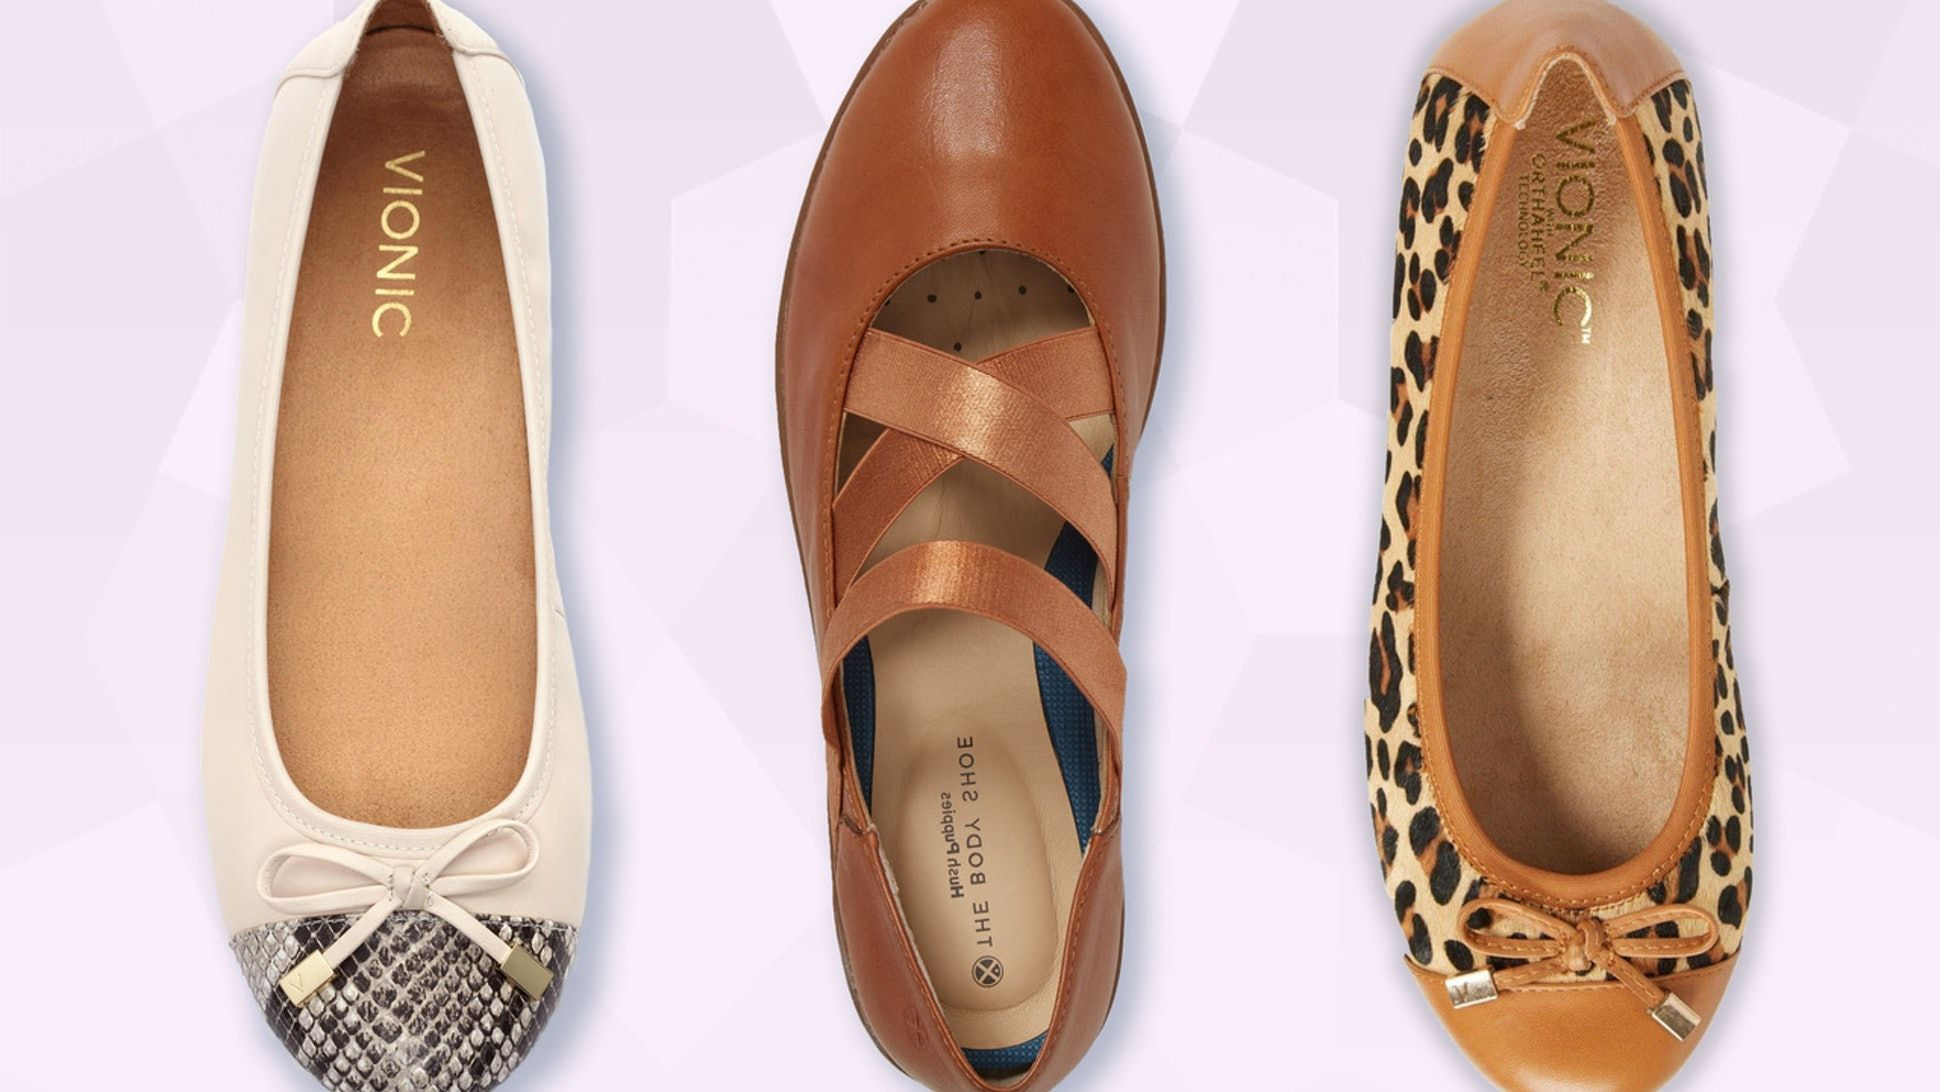 If you have bunions these are the only ballet flats worth